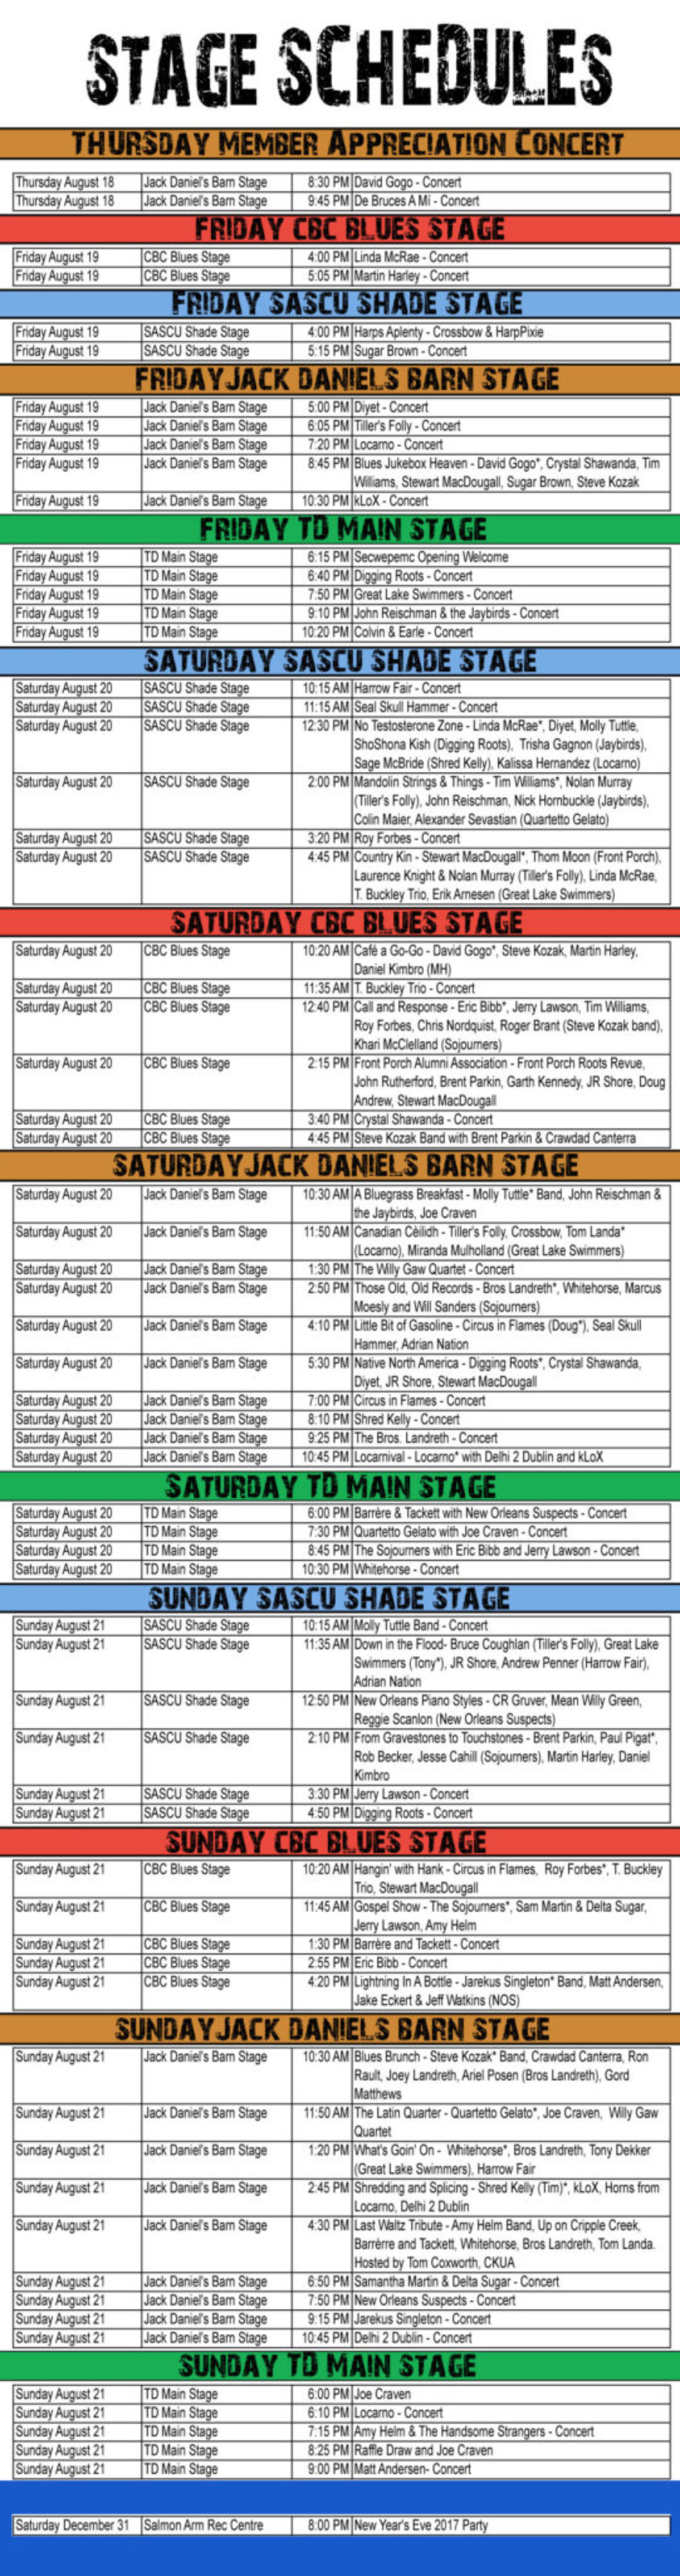 Schedule for the Salmon Arm Roots&Blues Festival